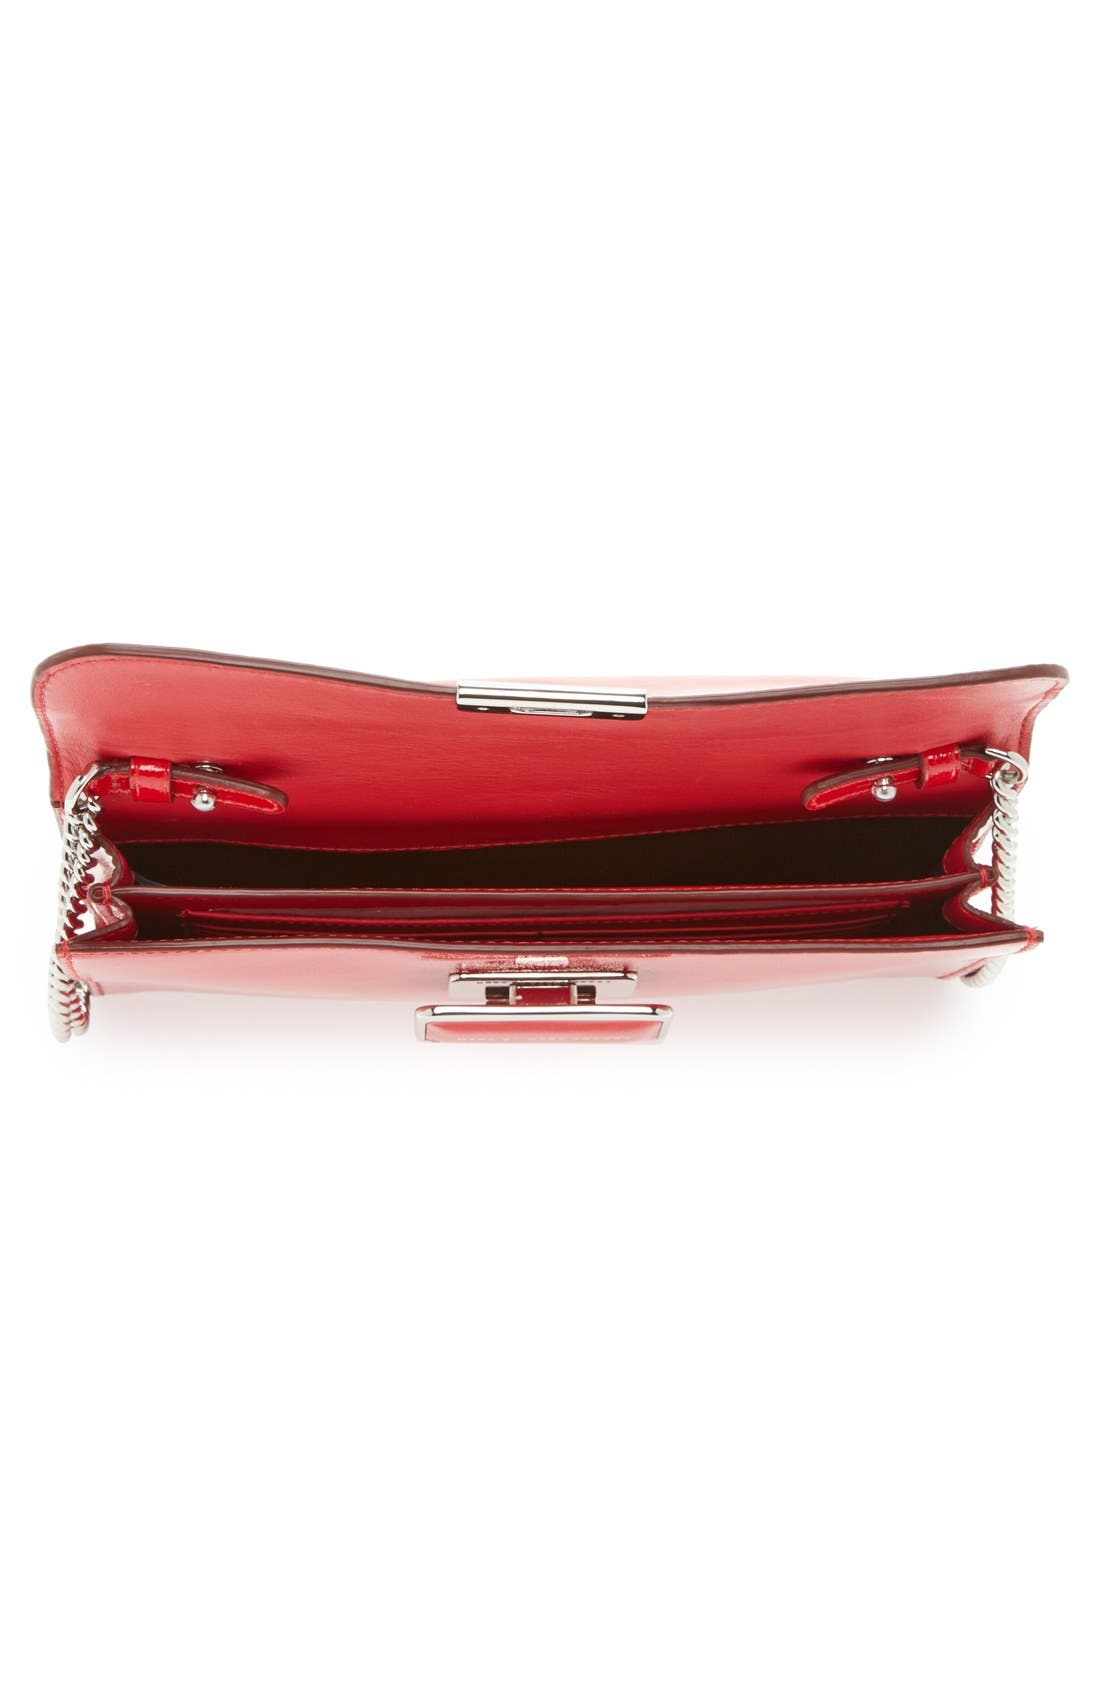 Alternate Image 3  - MARC BY MARC JACOBS 'Pegg' Patent Leather Clutch